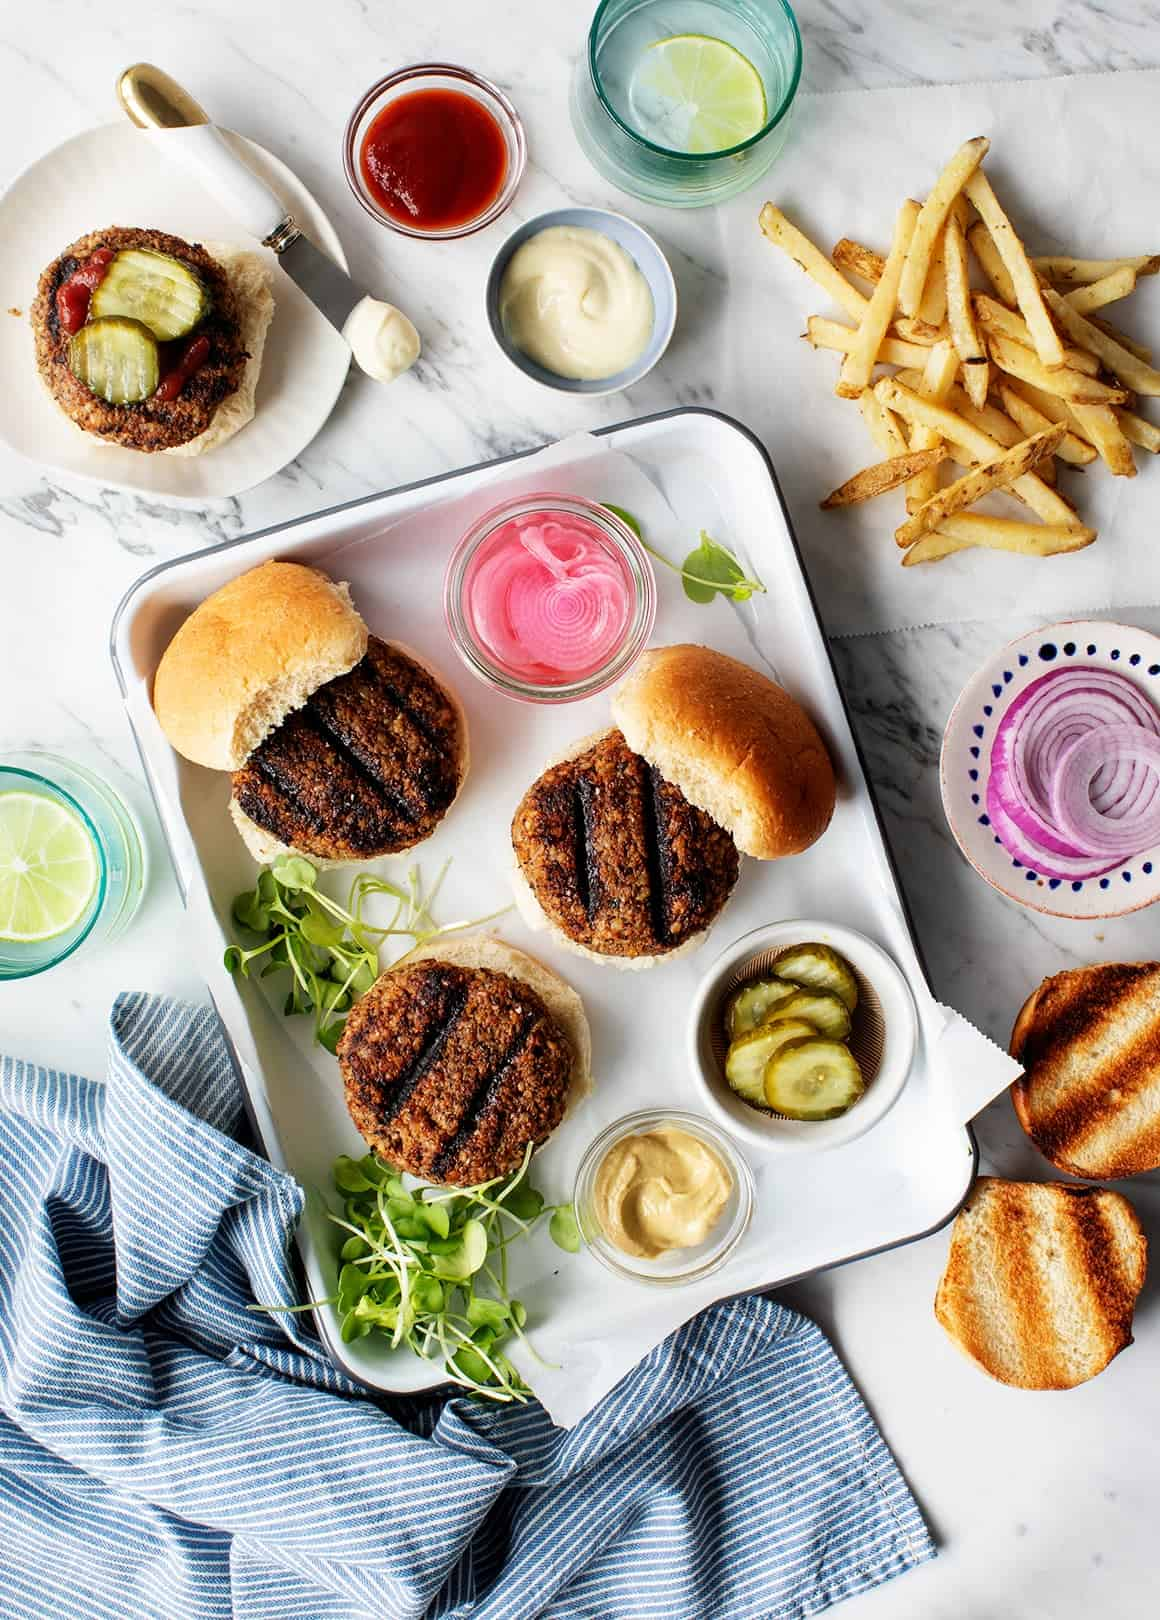 Best Darn Veggie Burgers (Vegan & Grillable)